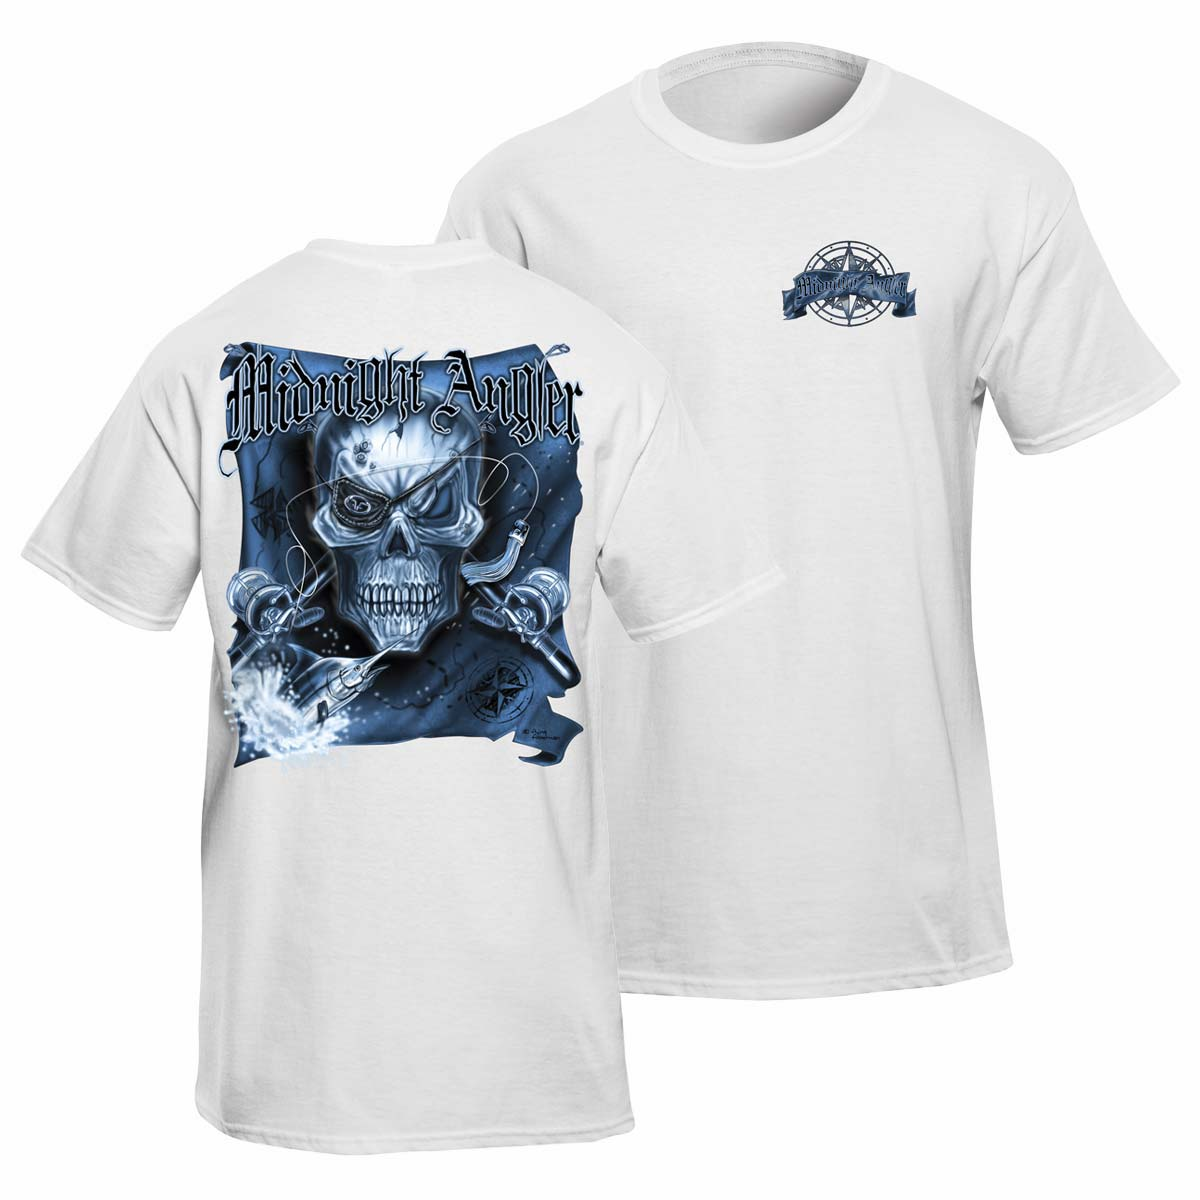 flying fisherman t1675wxxl midnight angler marlin t shirt. Black Bedroom Furniture Sets. Home Design Ideas